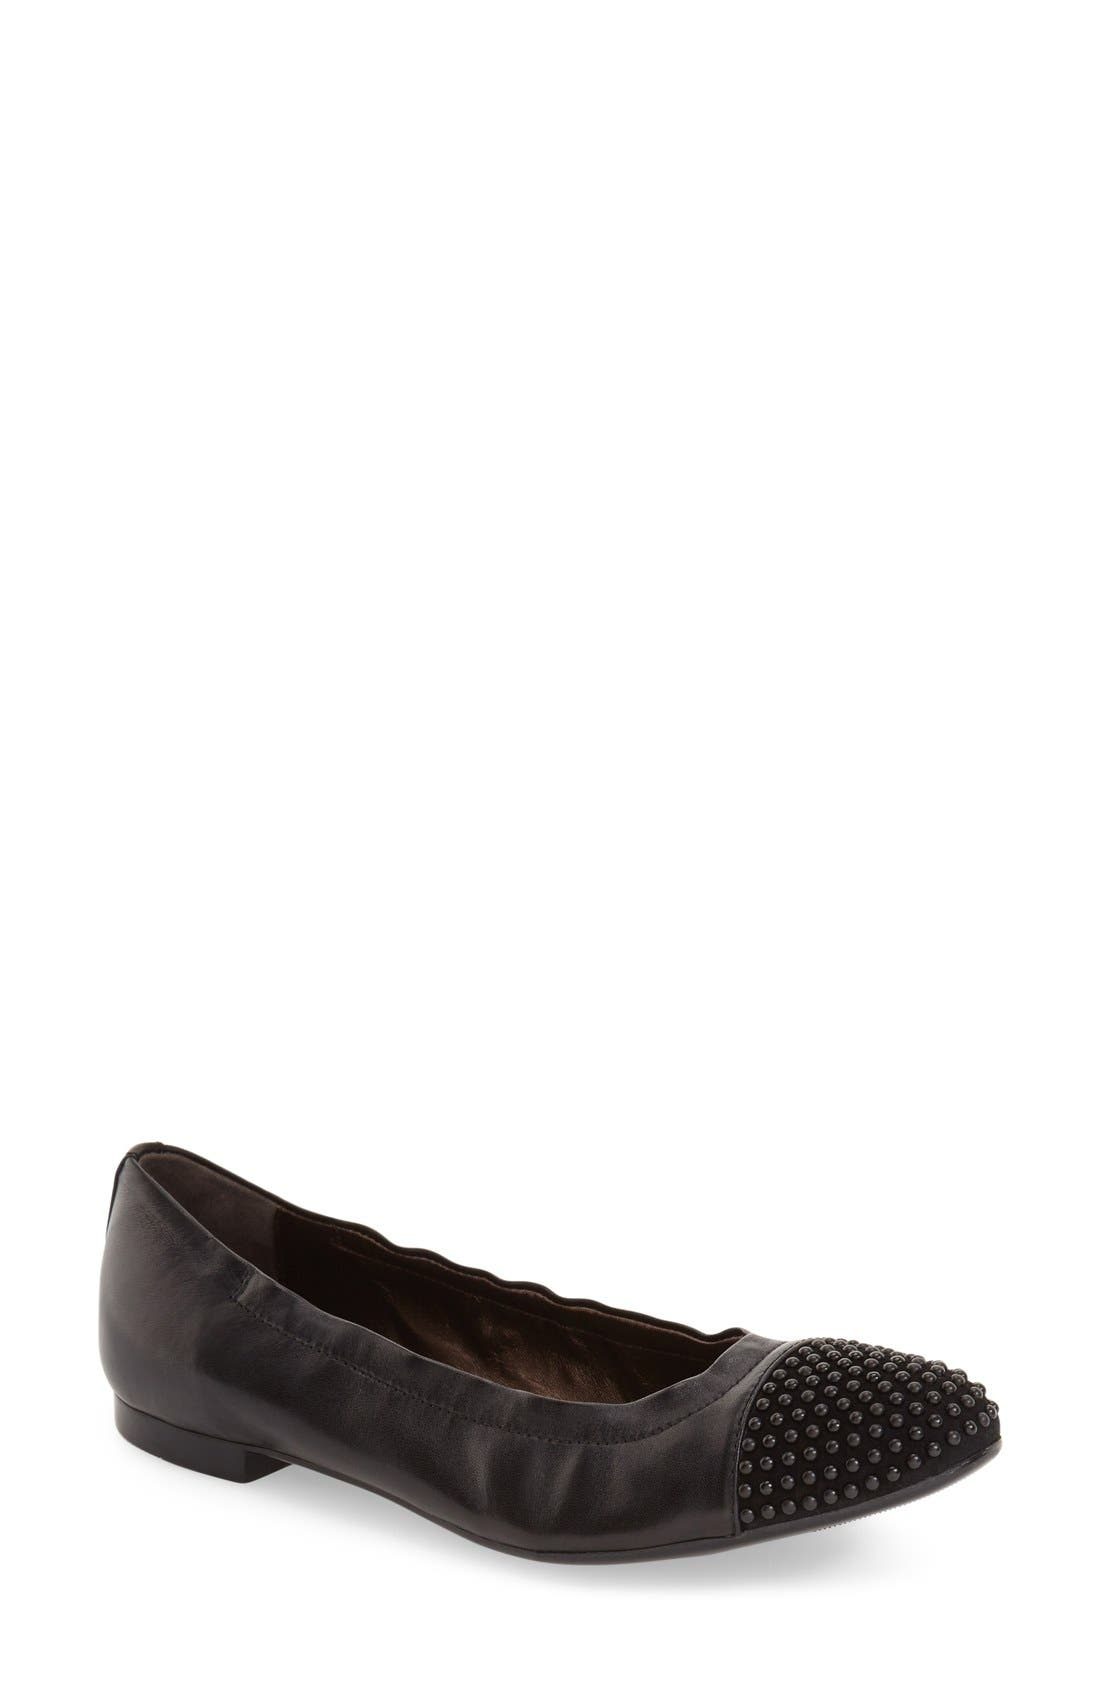 'Blakely' Studded Cap Toe Ballet Flat,                         Main,                         color, 001